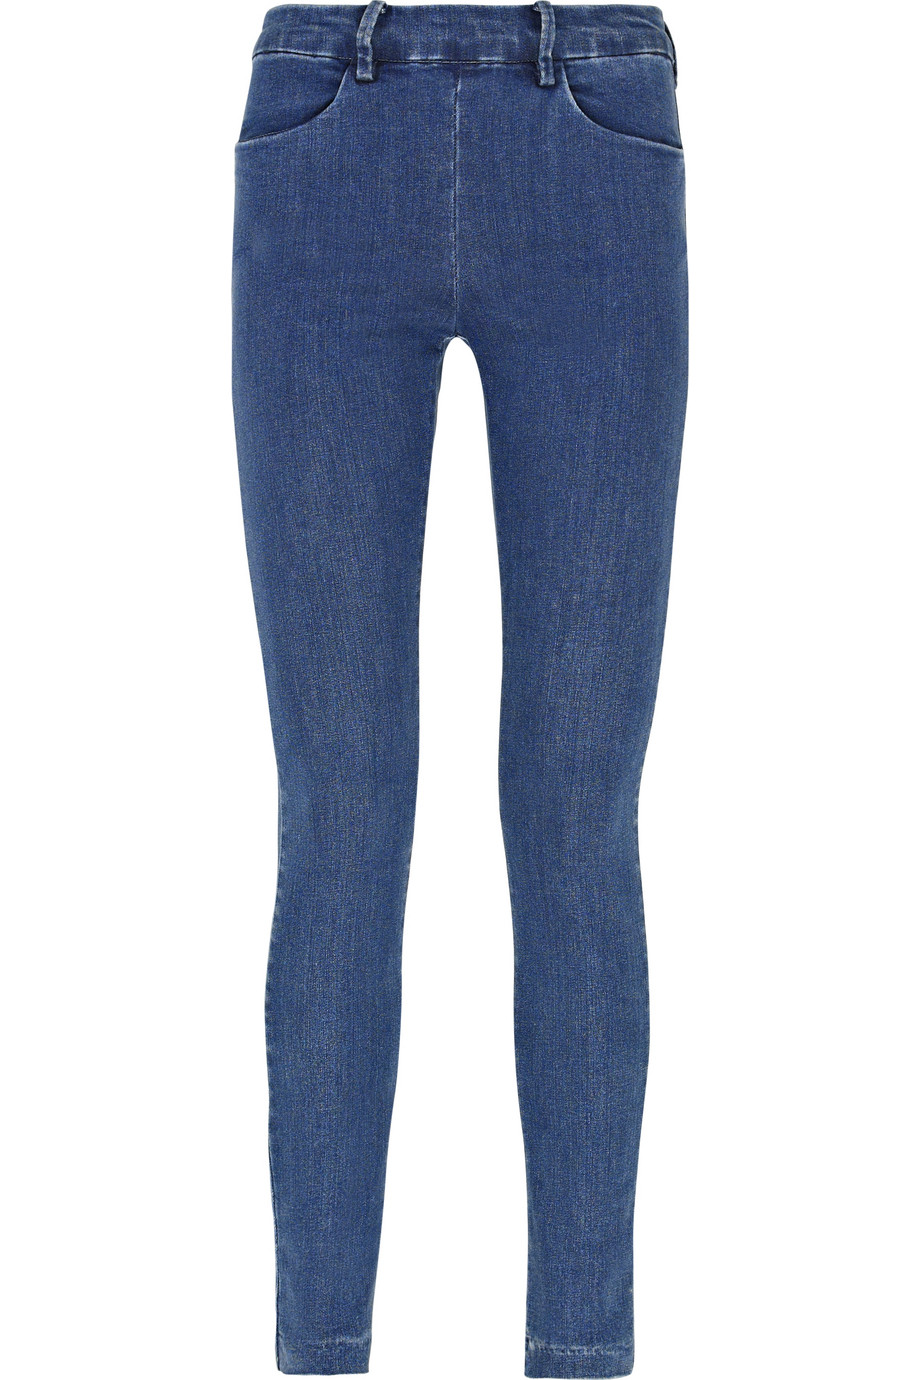 Acne Skin high-rise zip-back skinny jeans - 70% Off Now at THE OUTNET